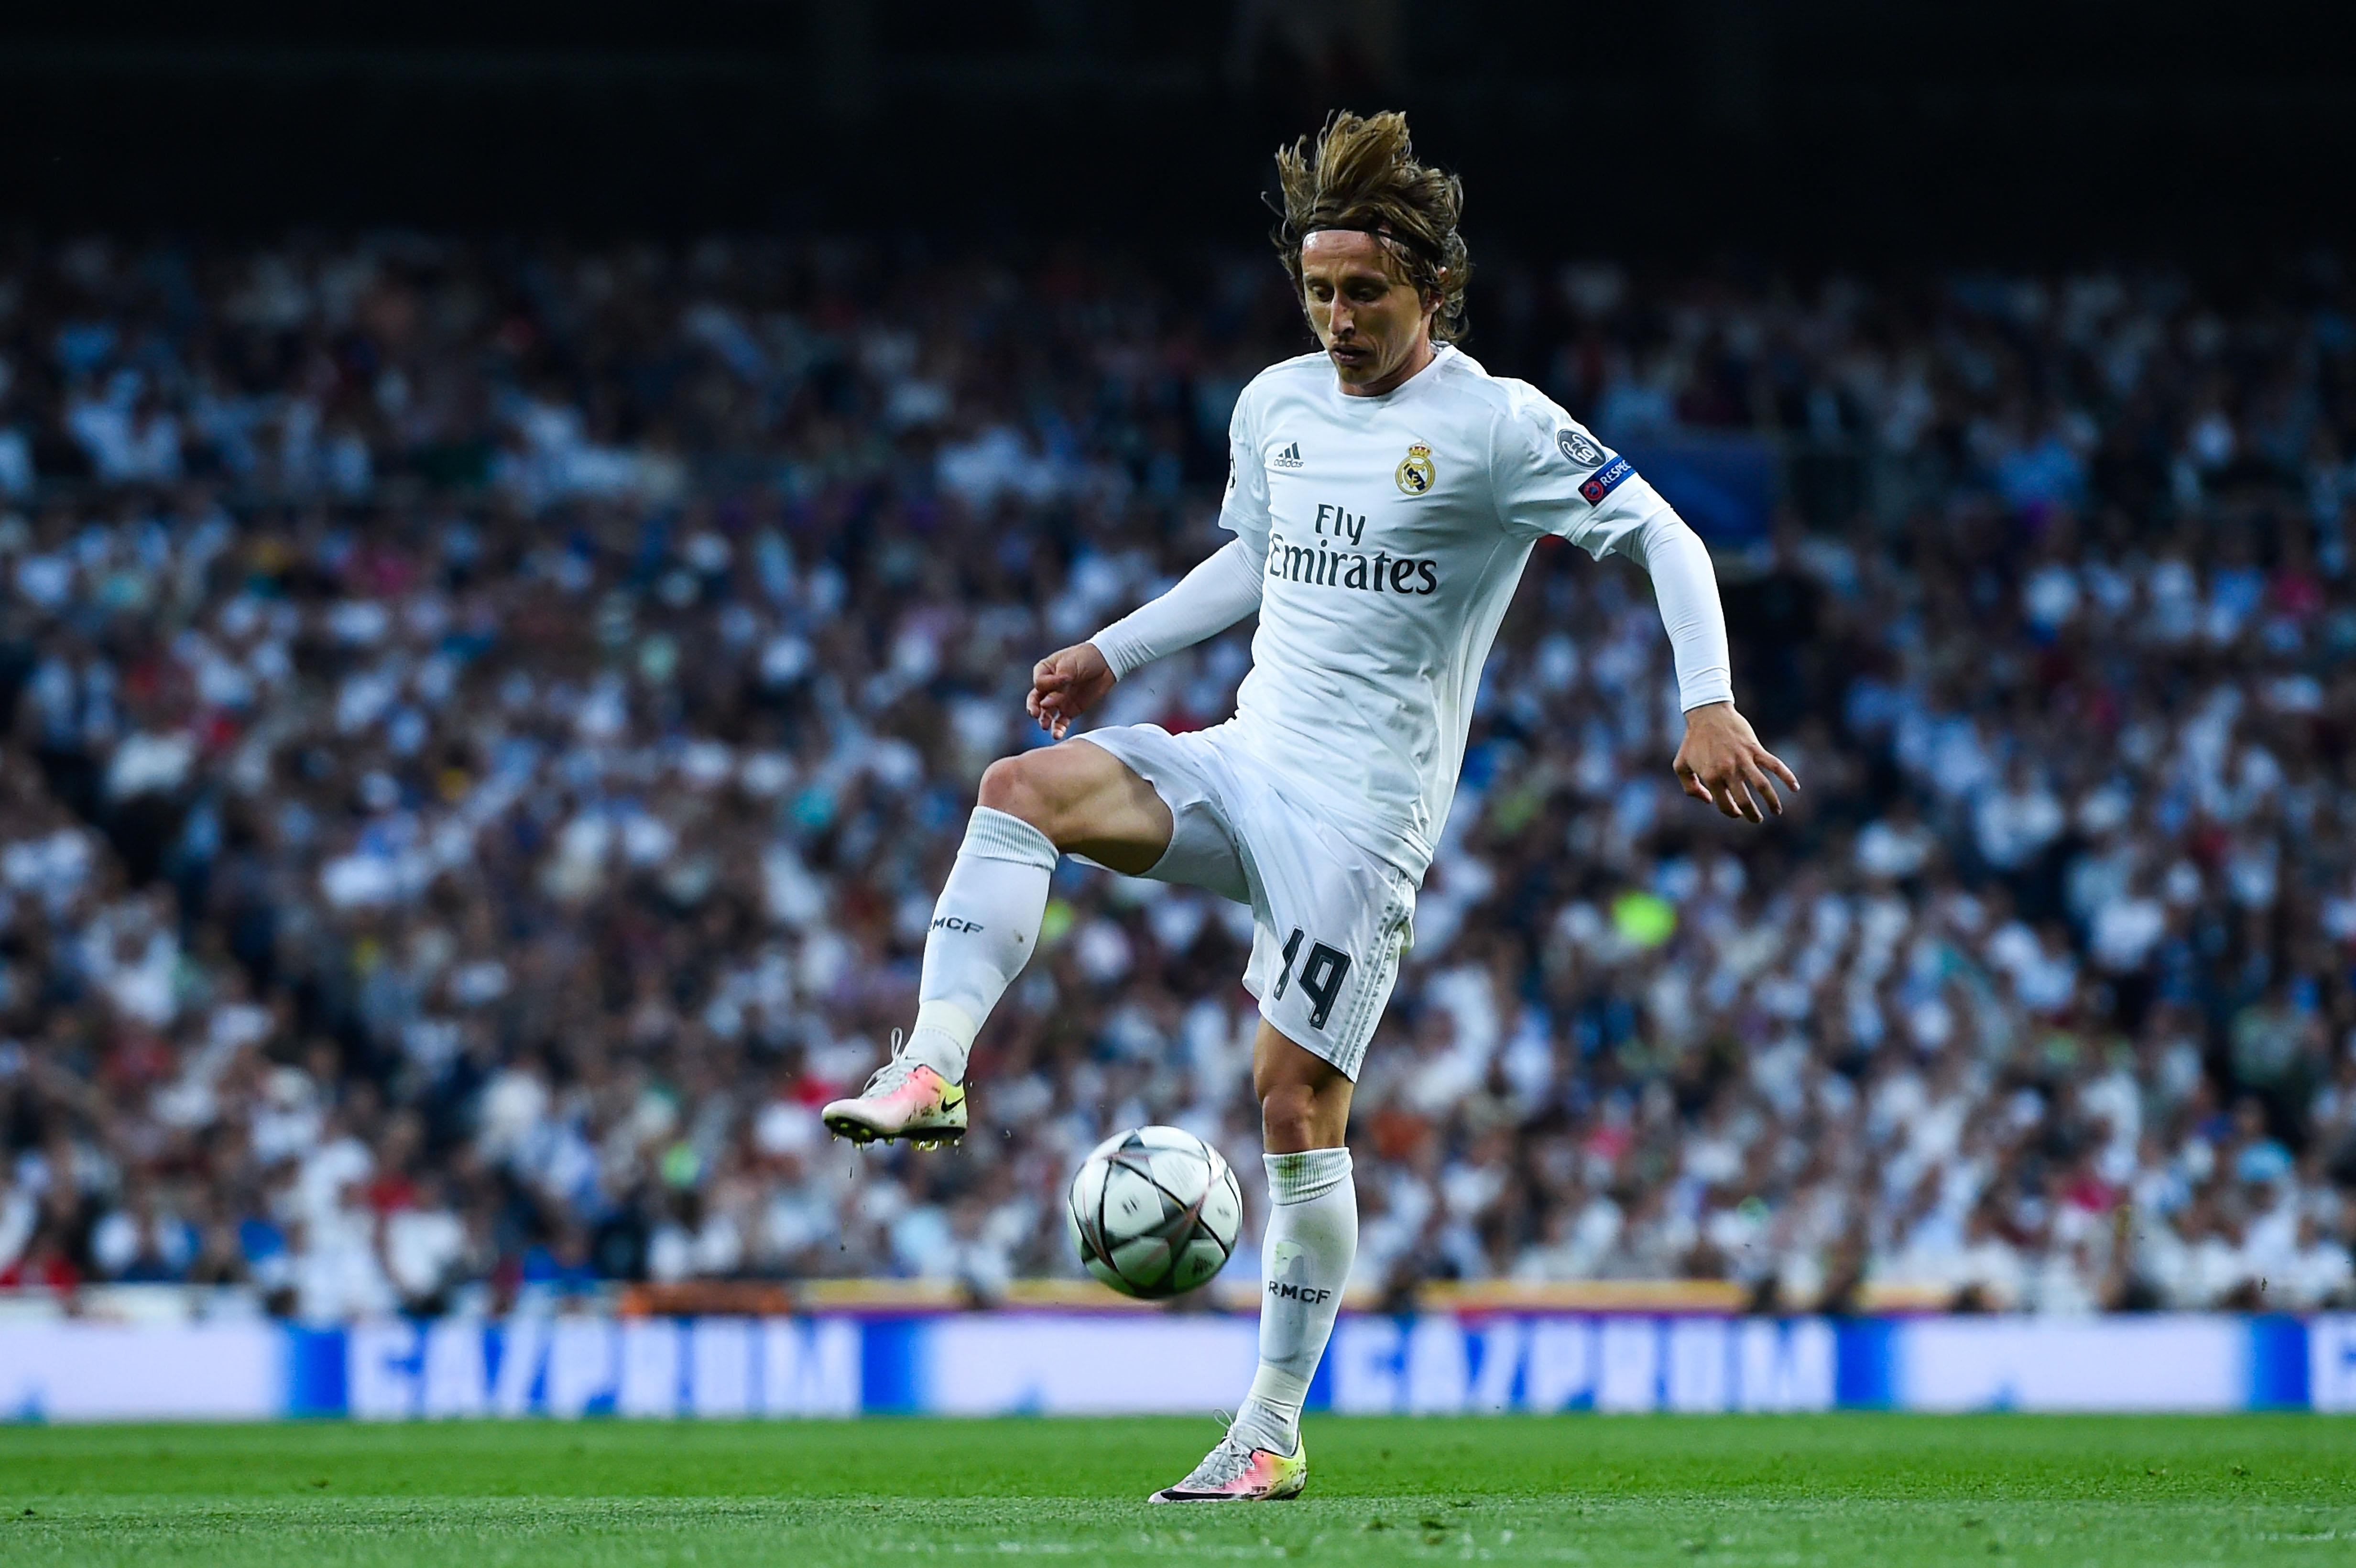 993e57f02 What Makes Luka Modric So Special  - A Statistical Analysis ...